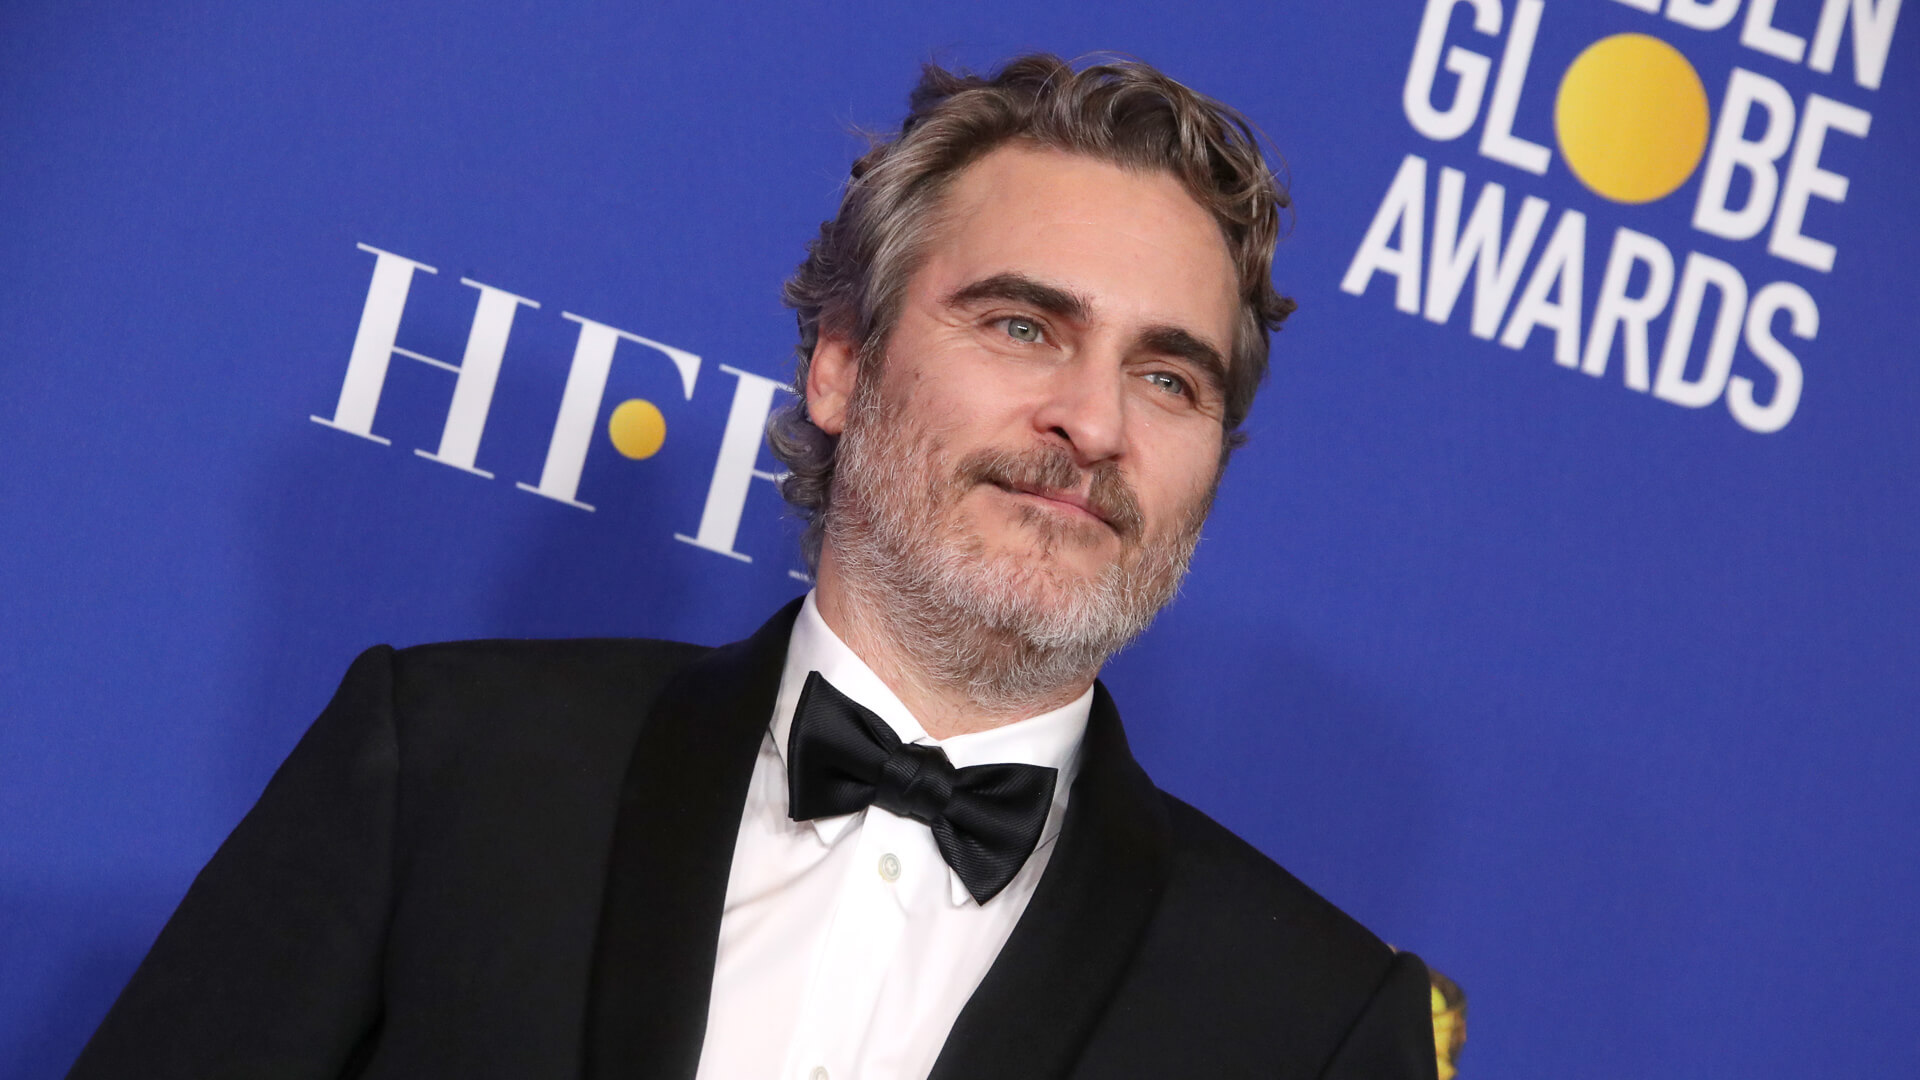 Joaquin Phoenix - Best Performance by an Actor in a Motion Picture, Drama - Joker77th Annual Golden Globe Awards, Press Room, Los Angeles, USA - 05 Jan 2020.